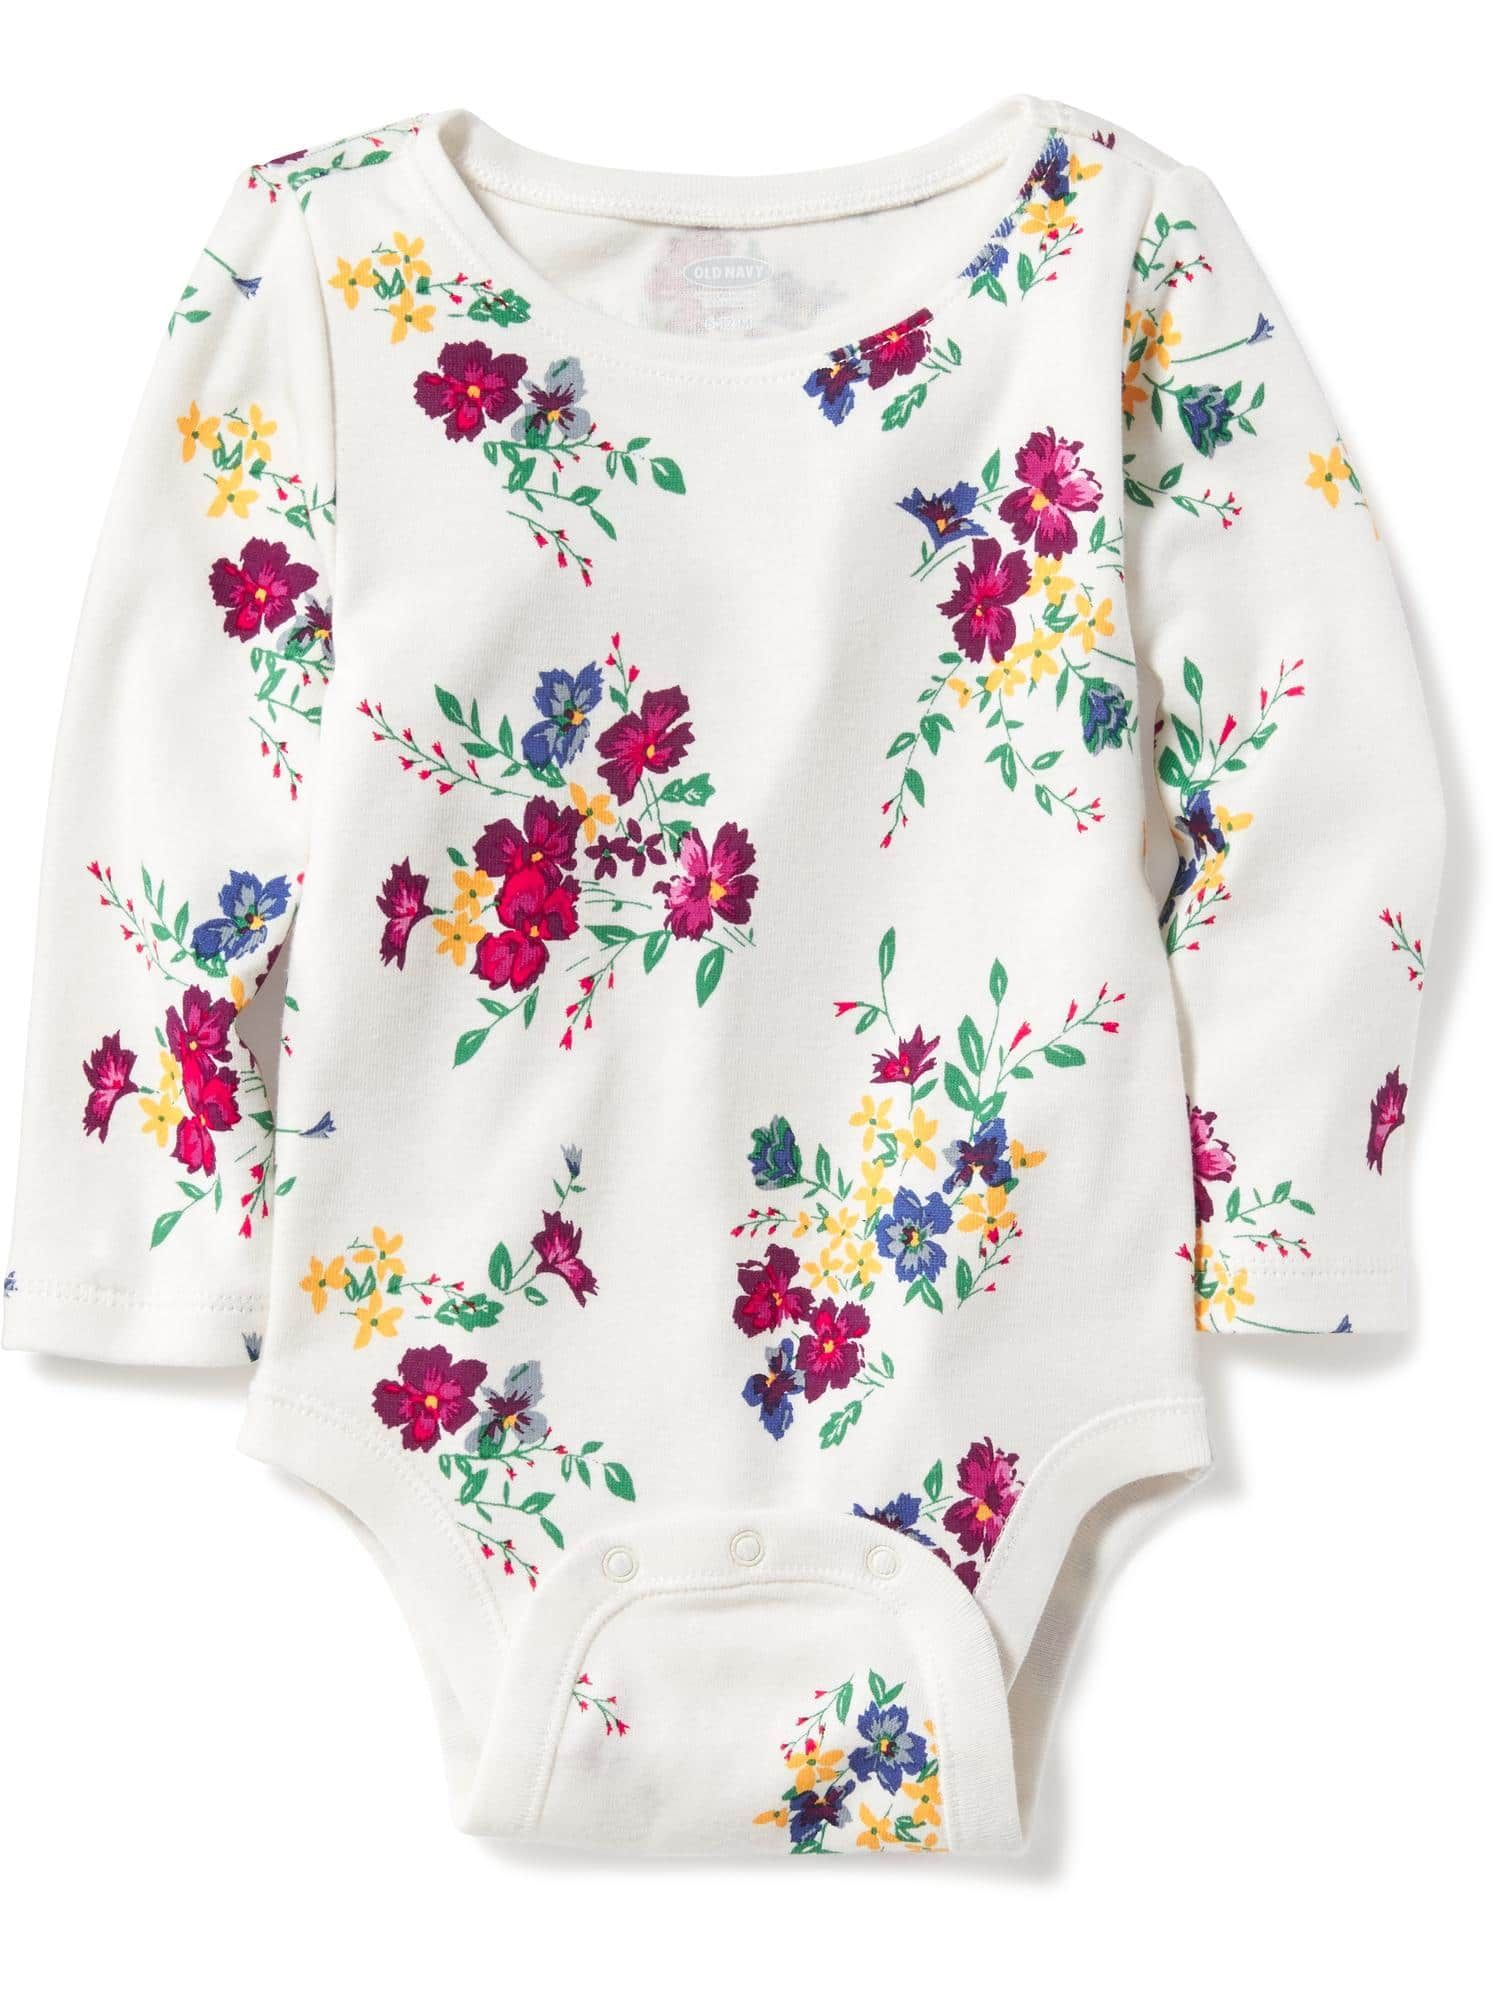 Patterned Bodysuit for Baby Old Navy Ropa Ni±a